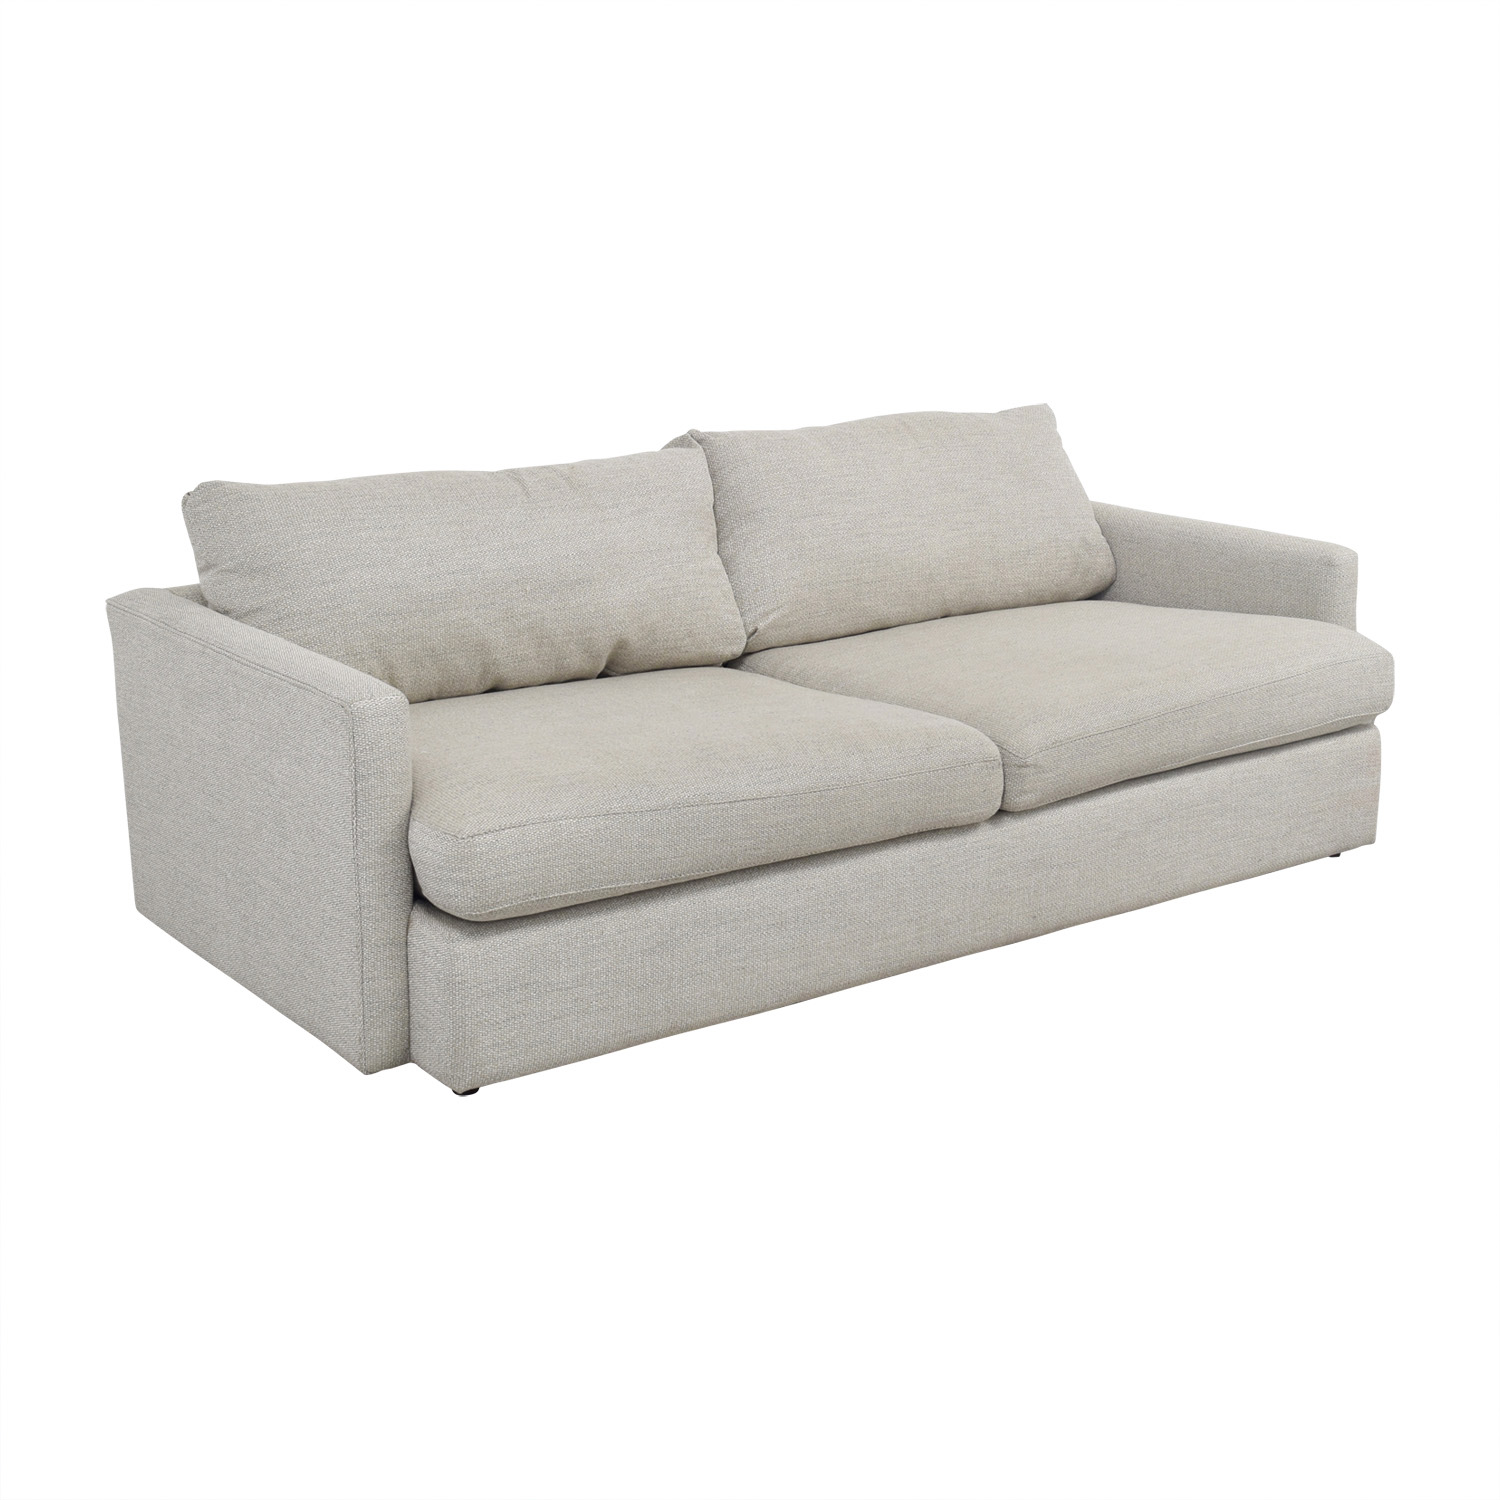 Crate & Barrel Crate & Barrel Lounge II Cement Grey Two Cushion Sofa used